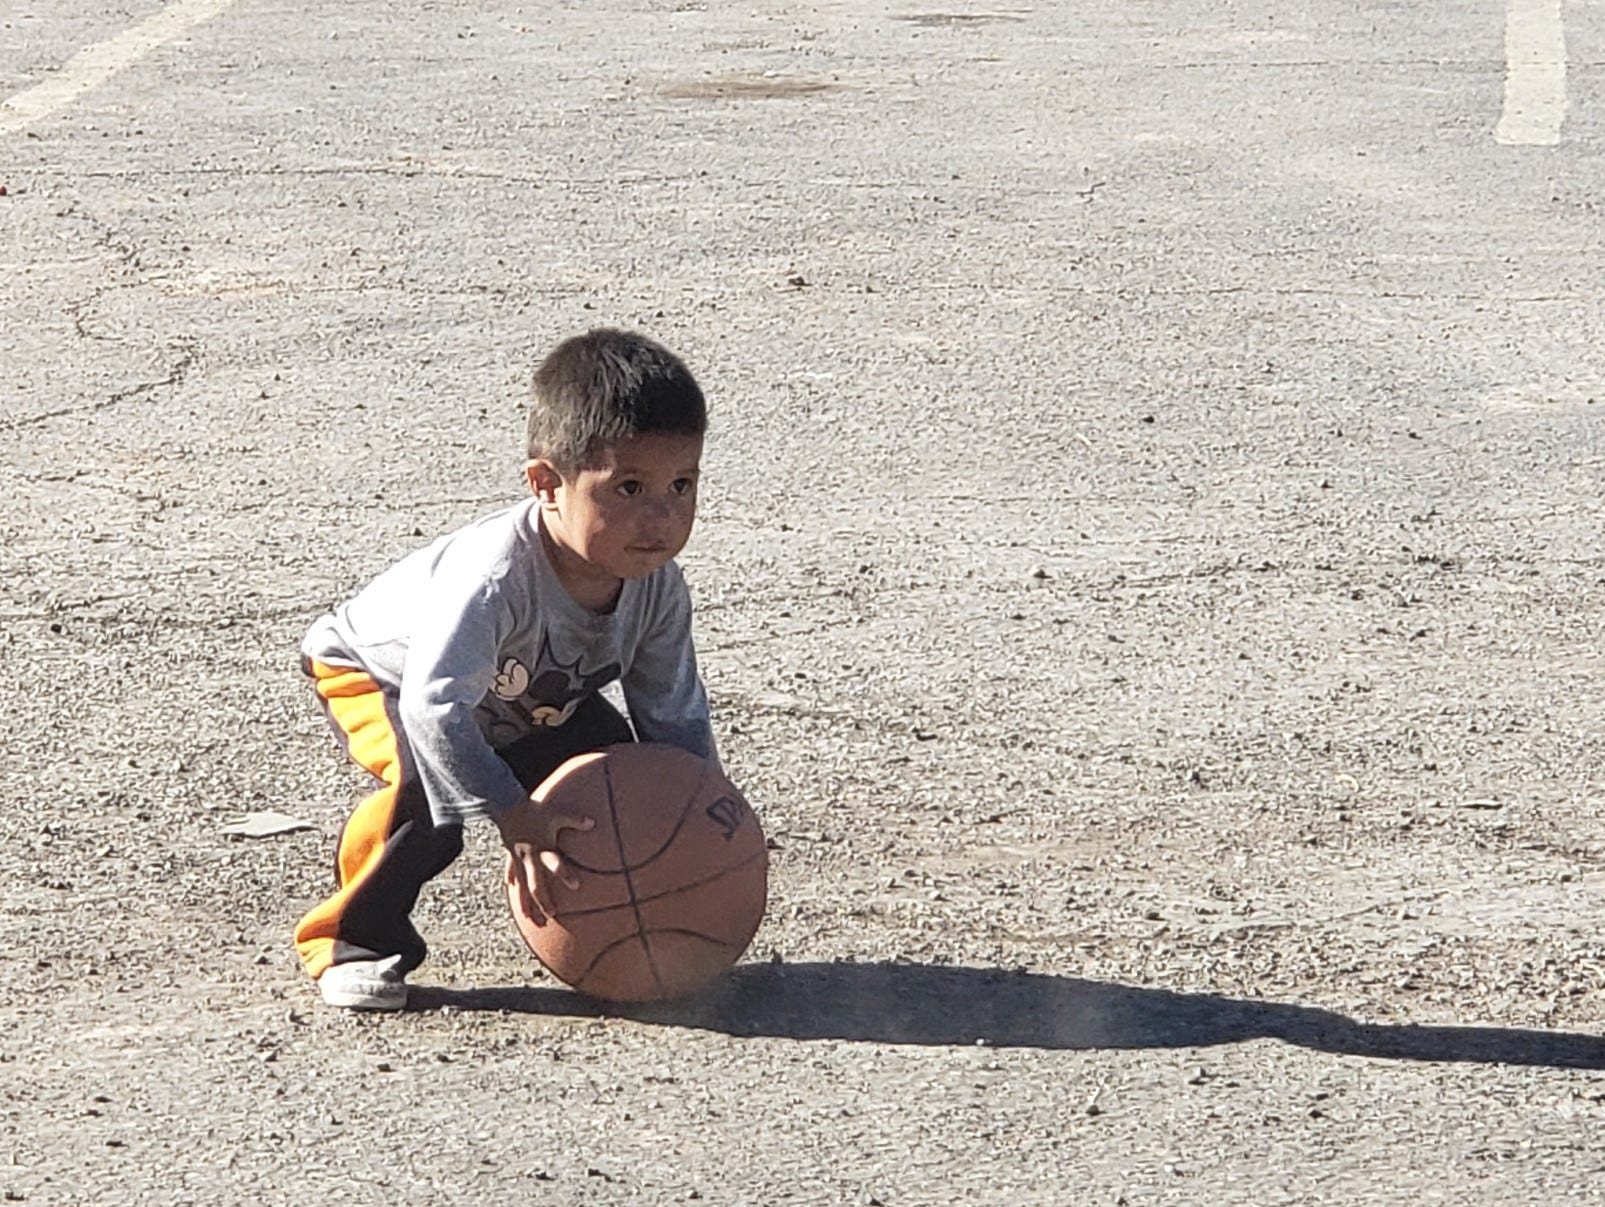 A migrant boy plays at the Gospel Rescue Mission on Thursday, April 18, 2019.